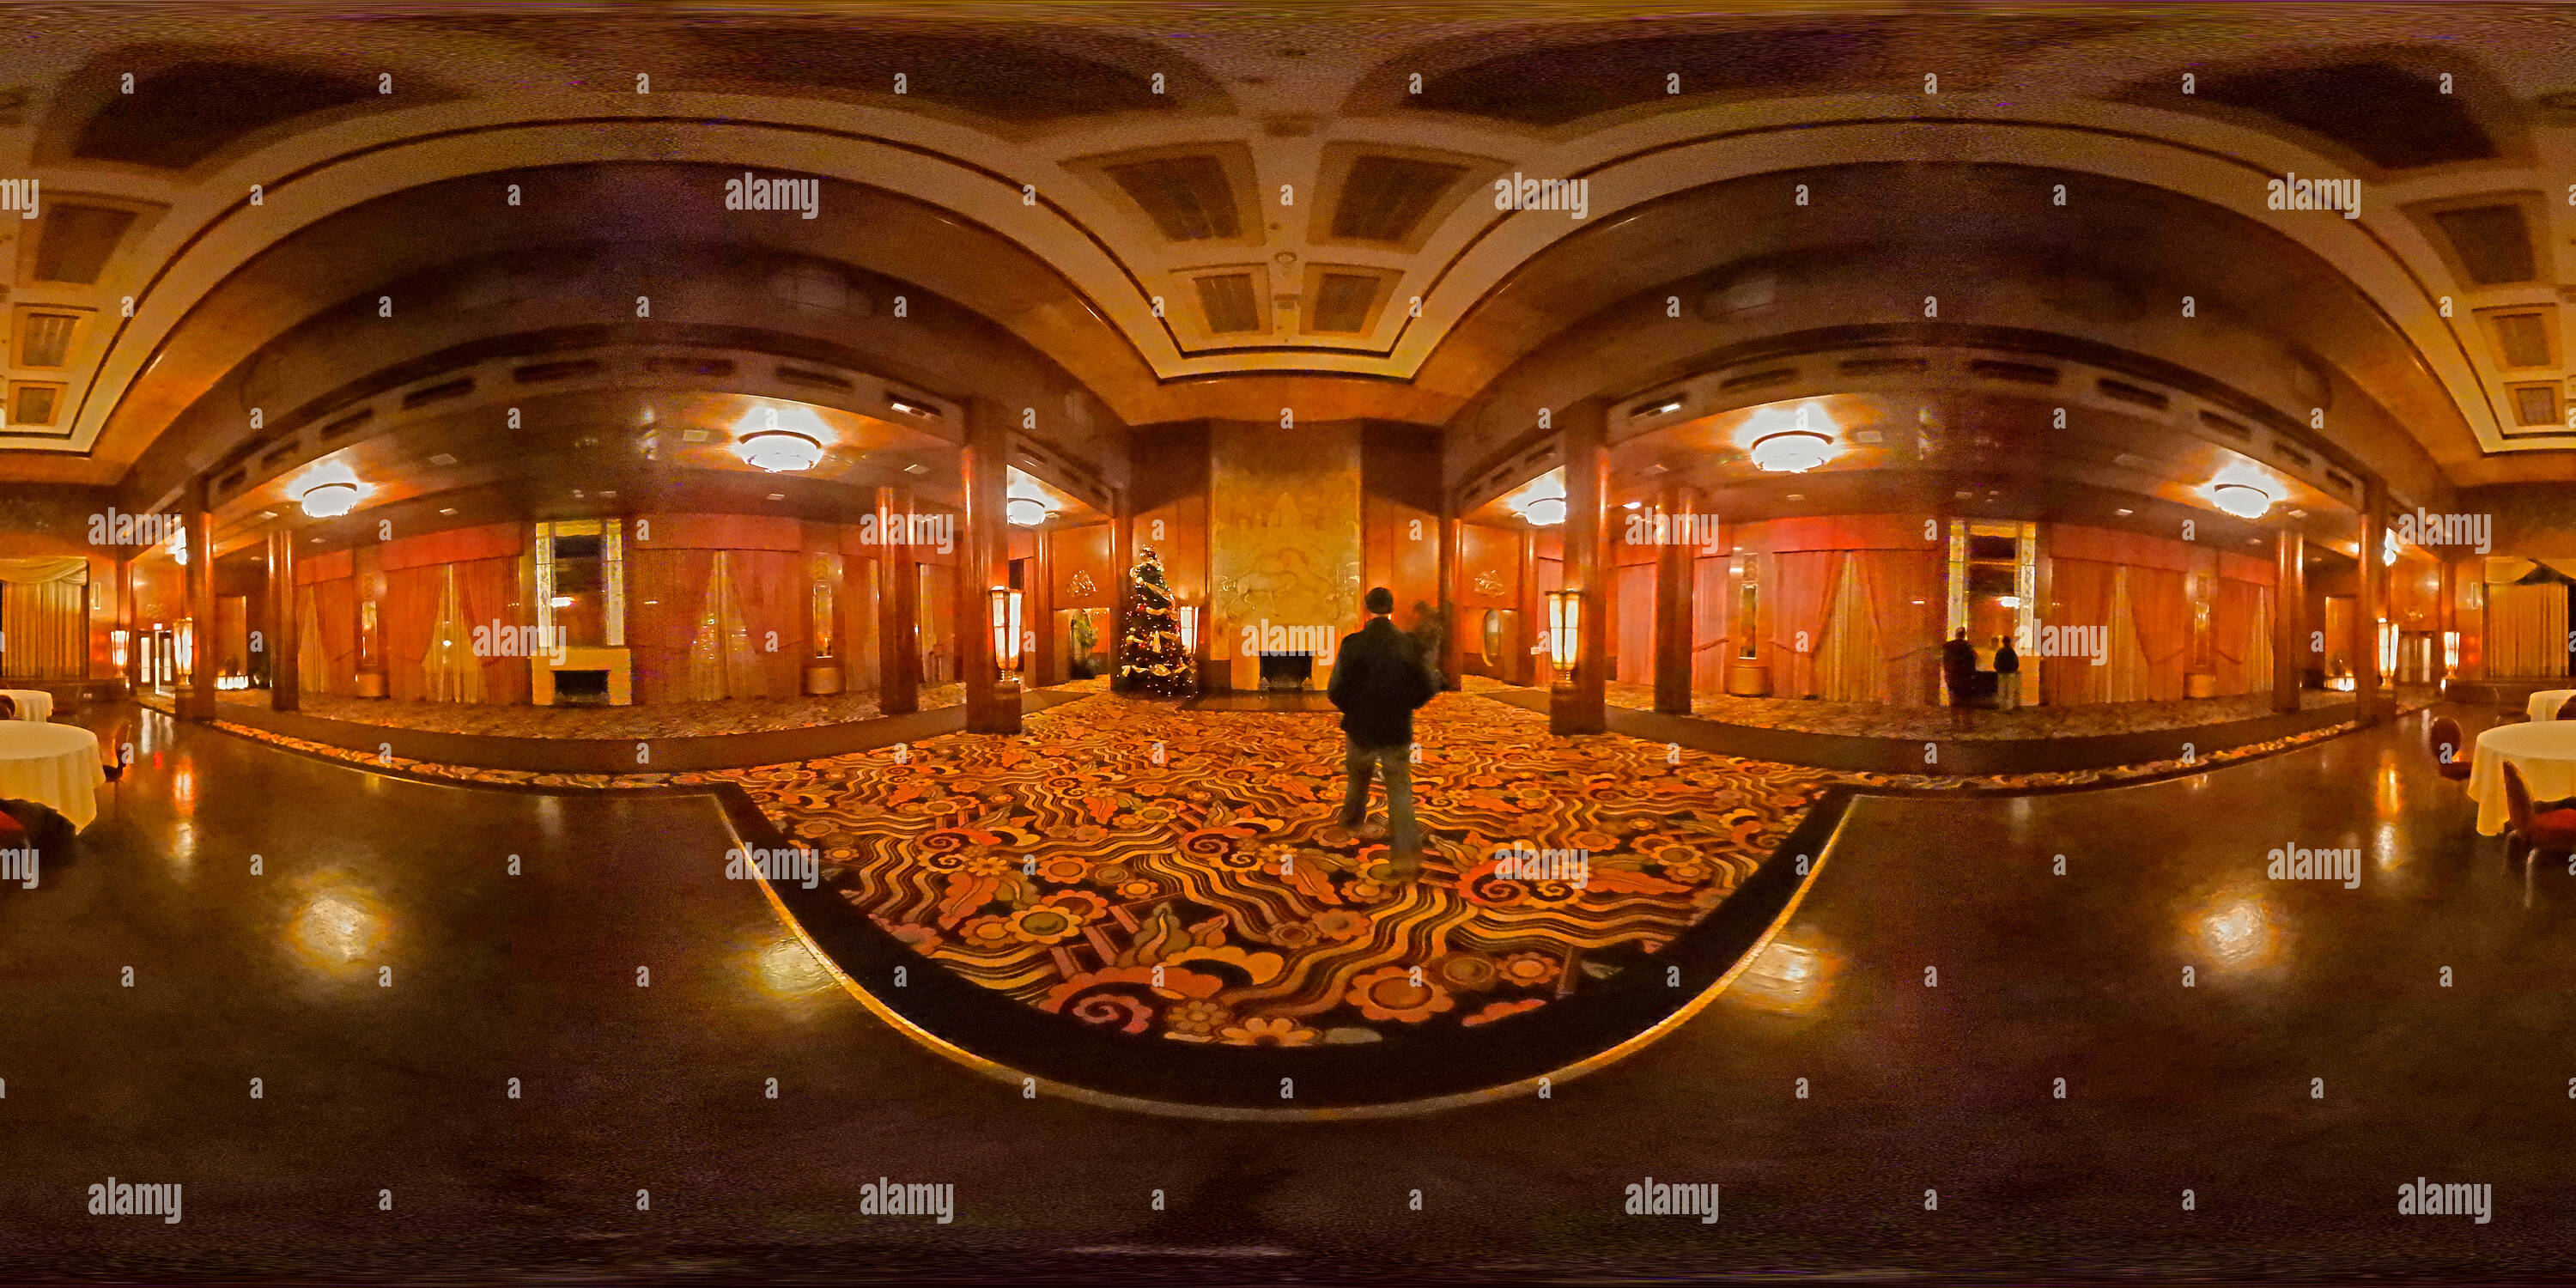 Vista panorámica en 360 grados de Queen Mary Ballroom - Long Beach, California